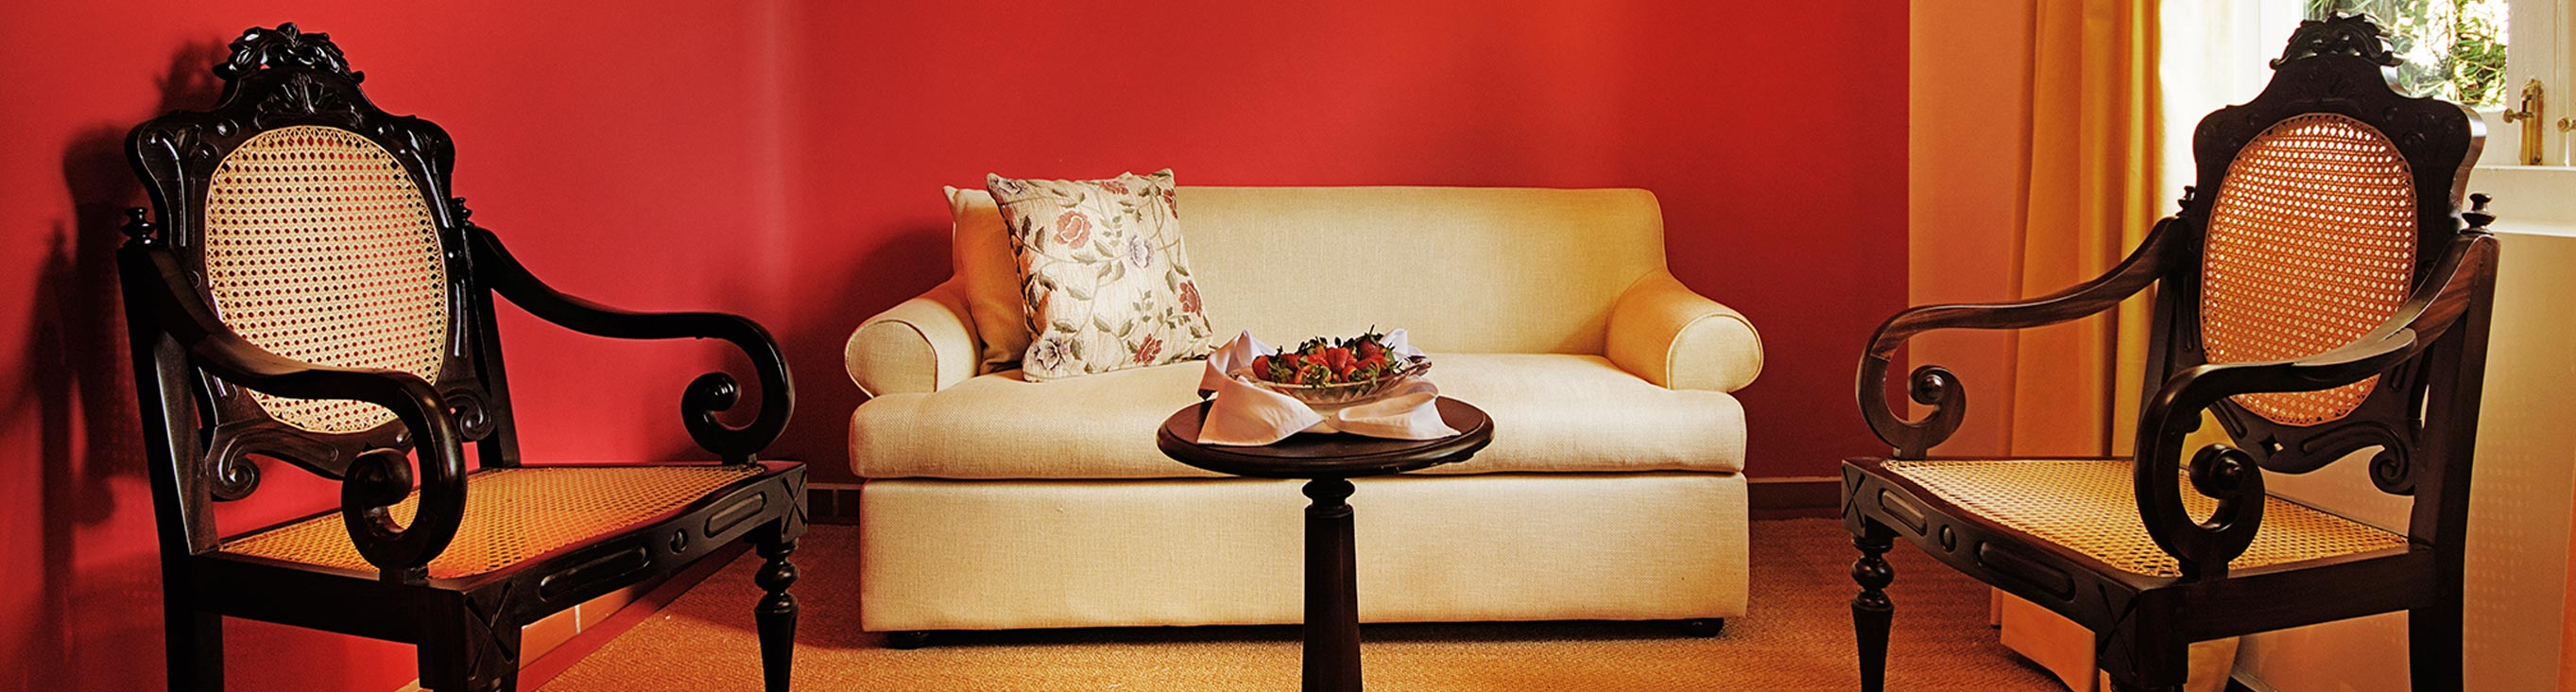 Cozy sofa at Strathdon by Jetwing